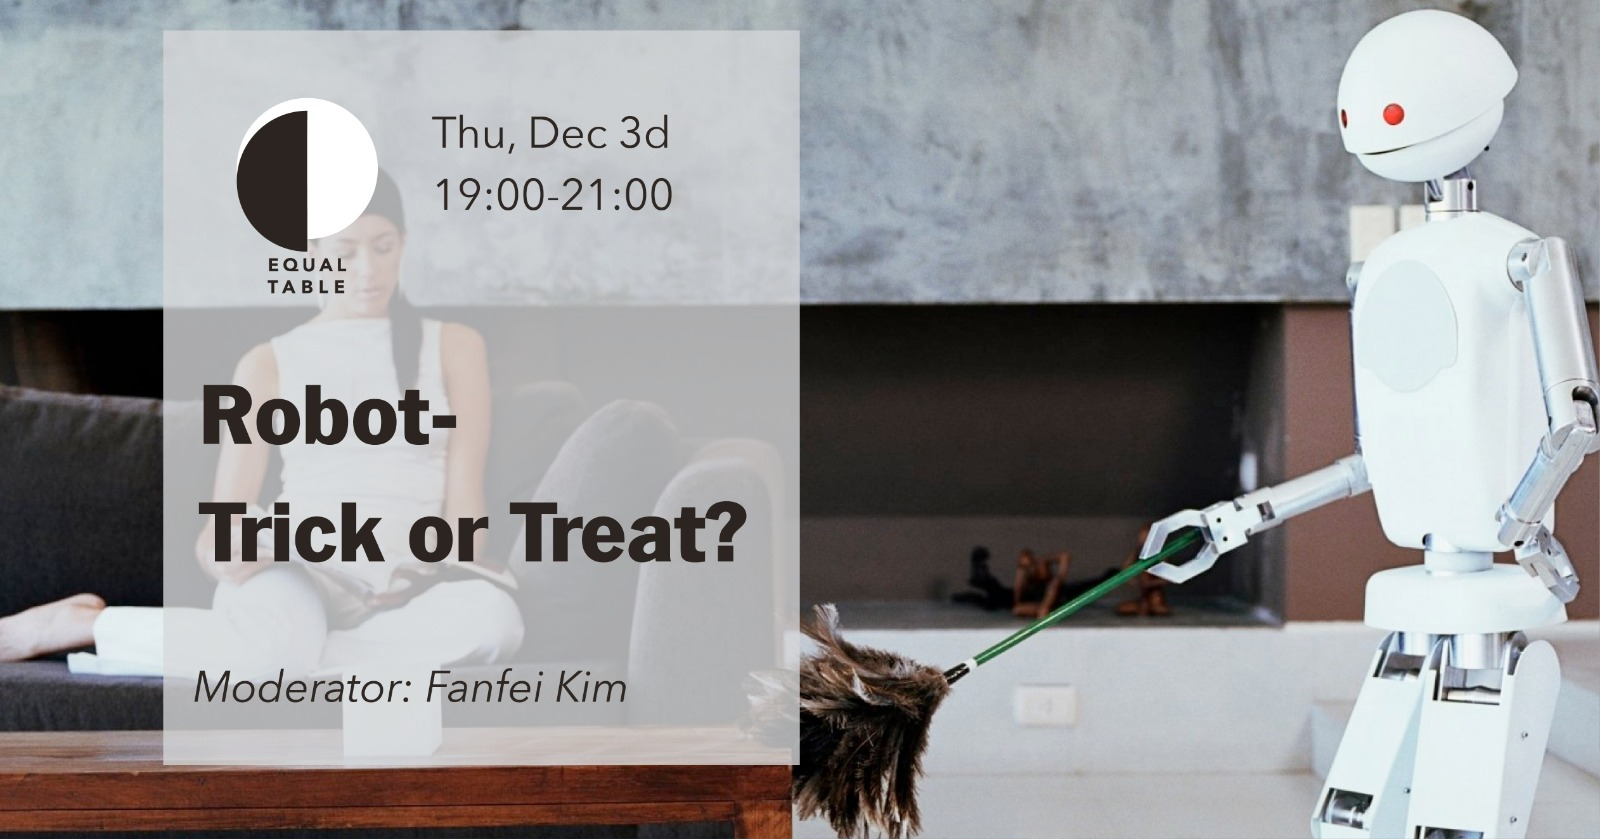 Equal Table Event: Robots – Trick or Treat? by Fanfei Kim